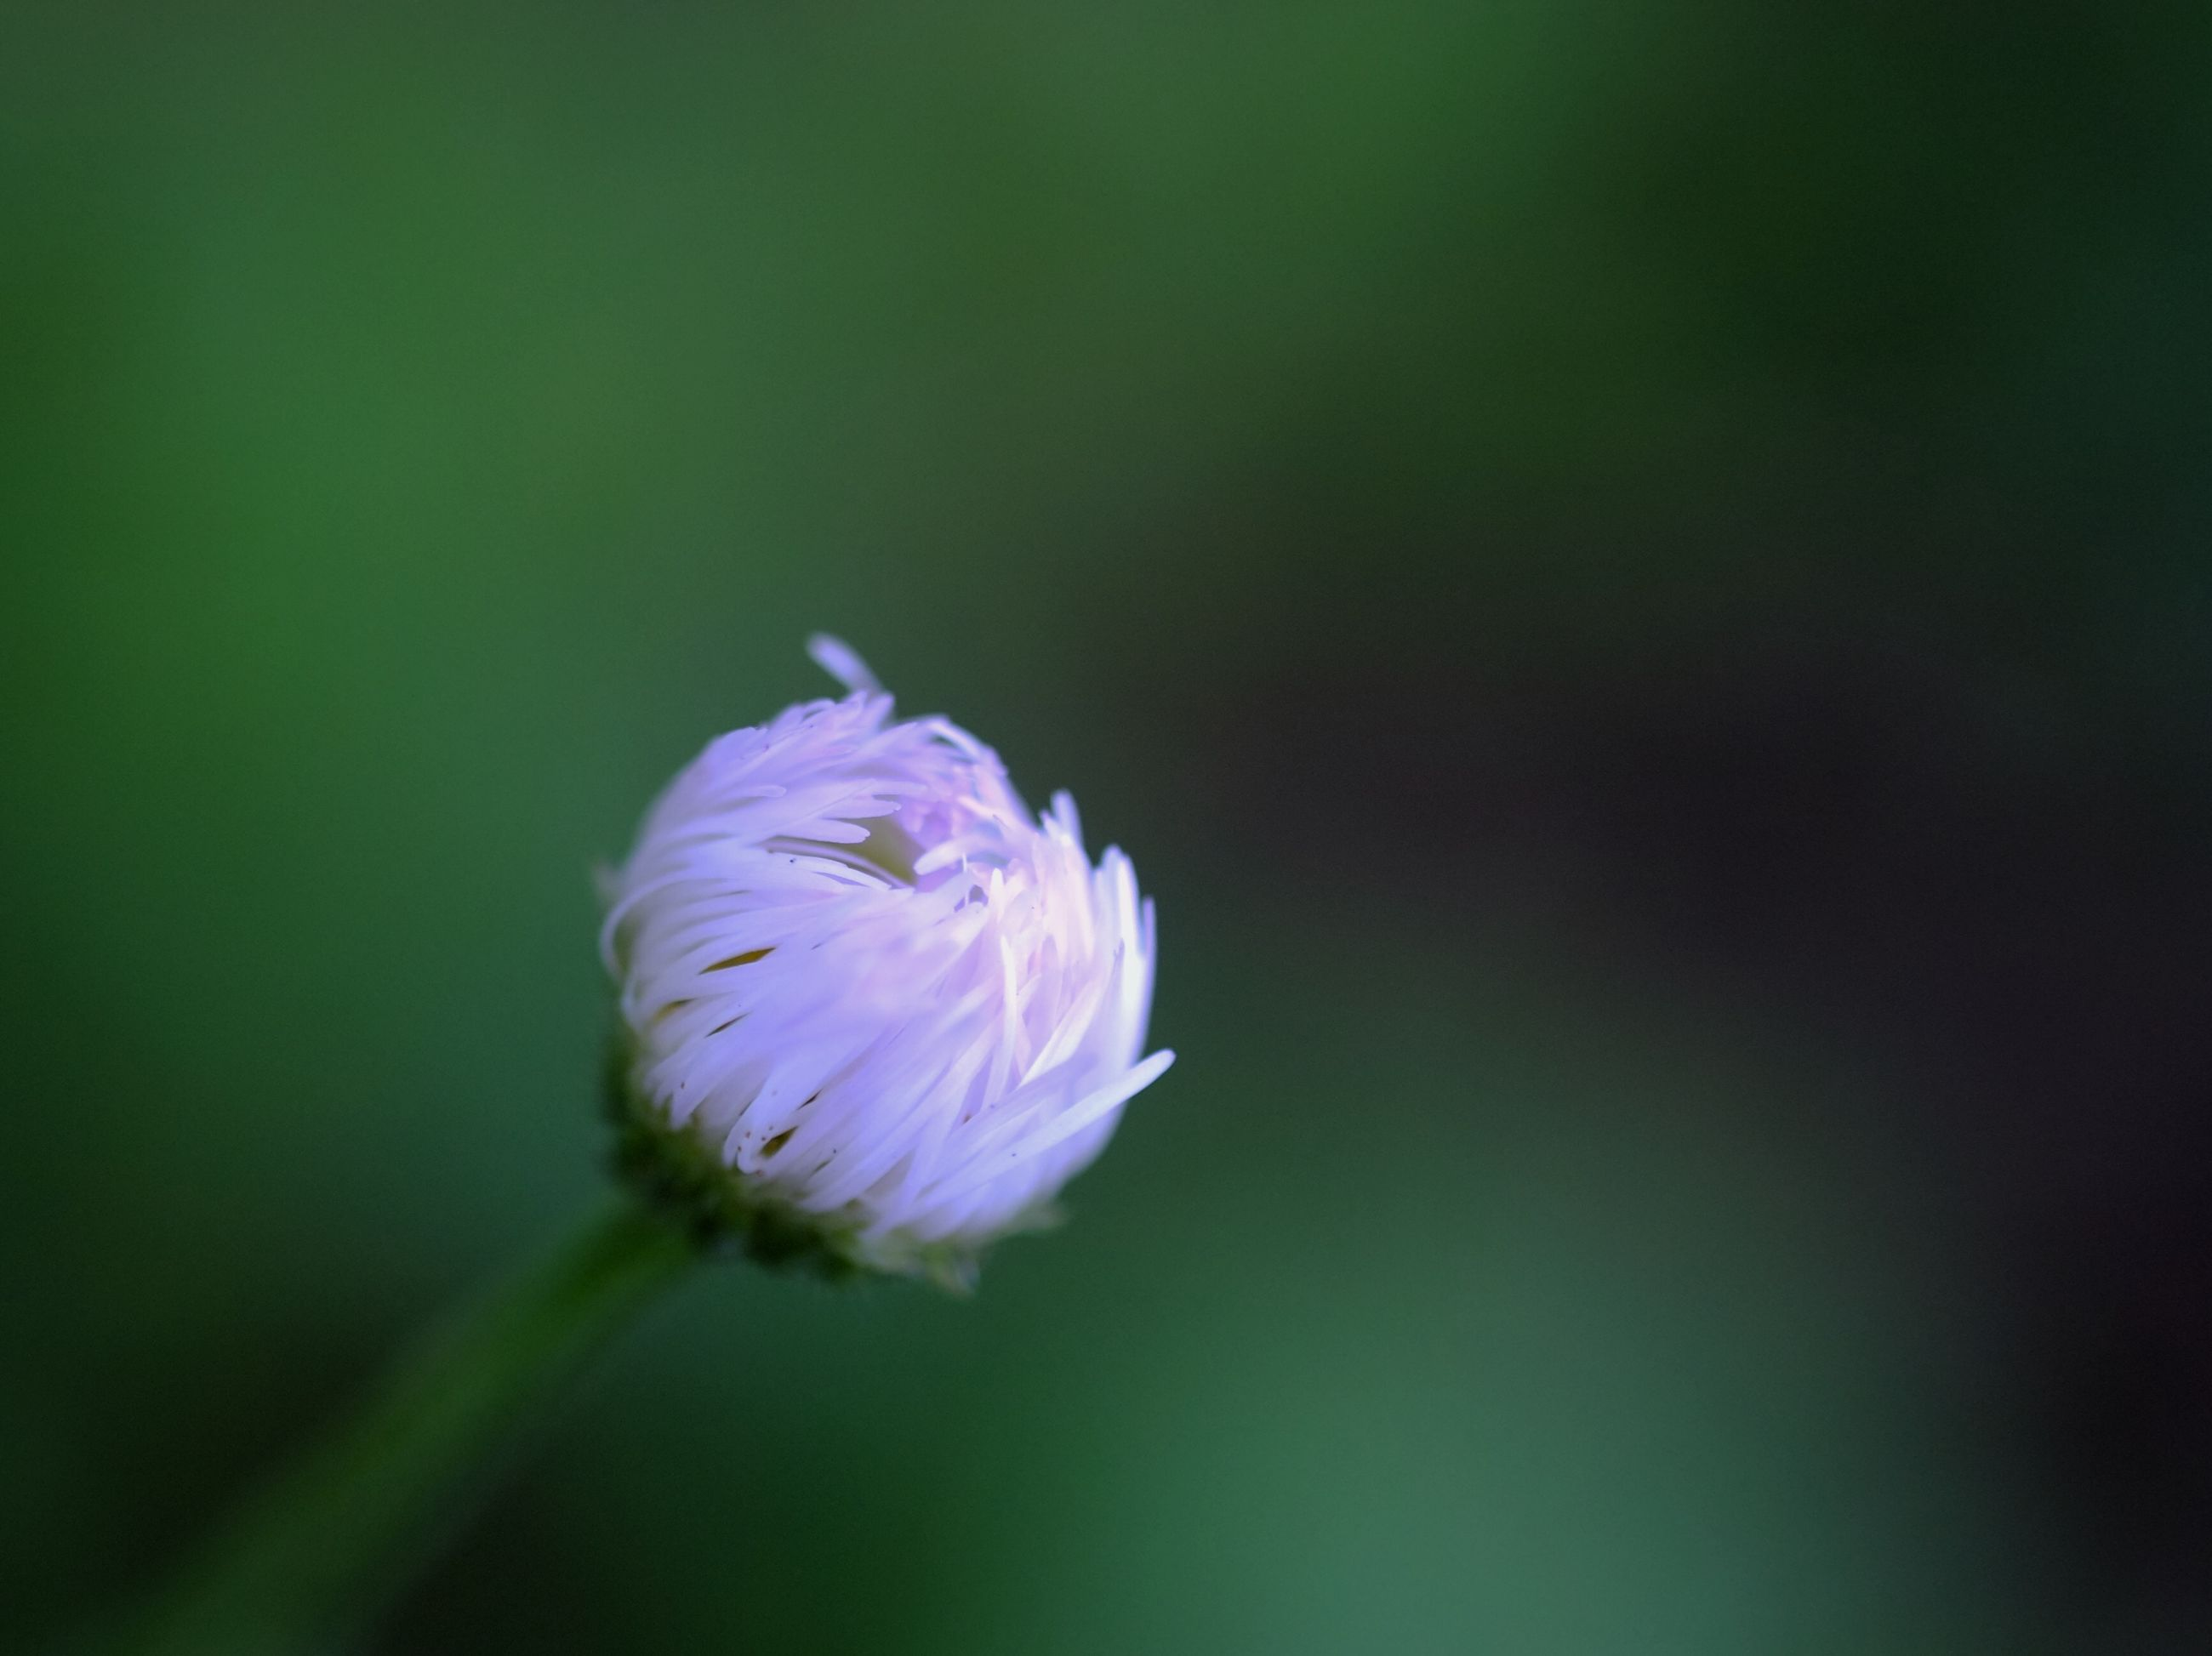 flower, petal, fragility, freshness, flower head, single flower, growth, beauty in nature, close-up, pink color, focus on foreground, blooming, nature, selective focus, stem, blossom, in bloom, plant, outdoors, purple